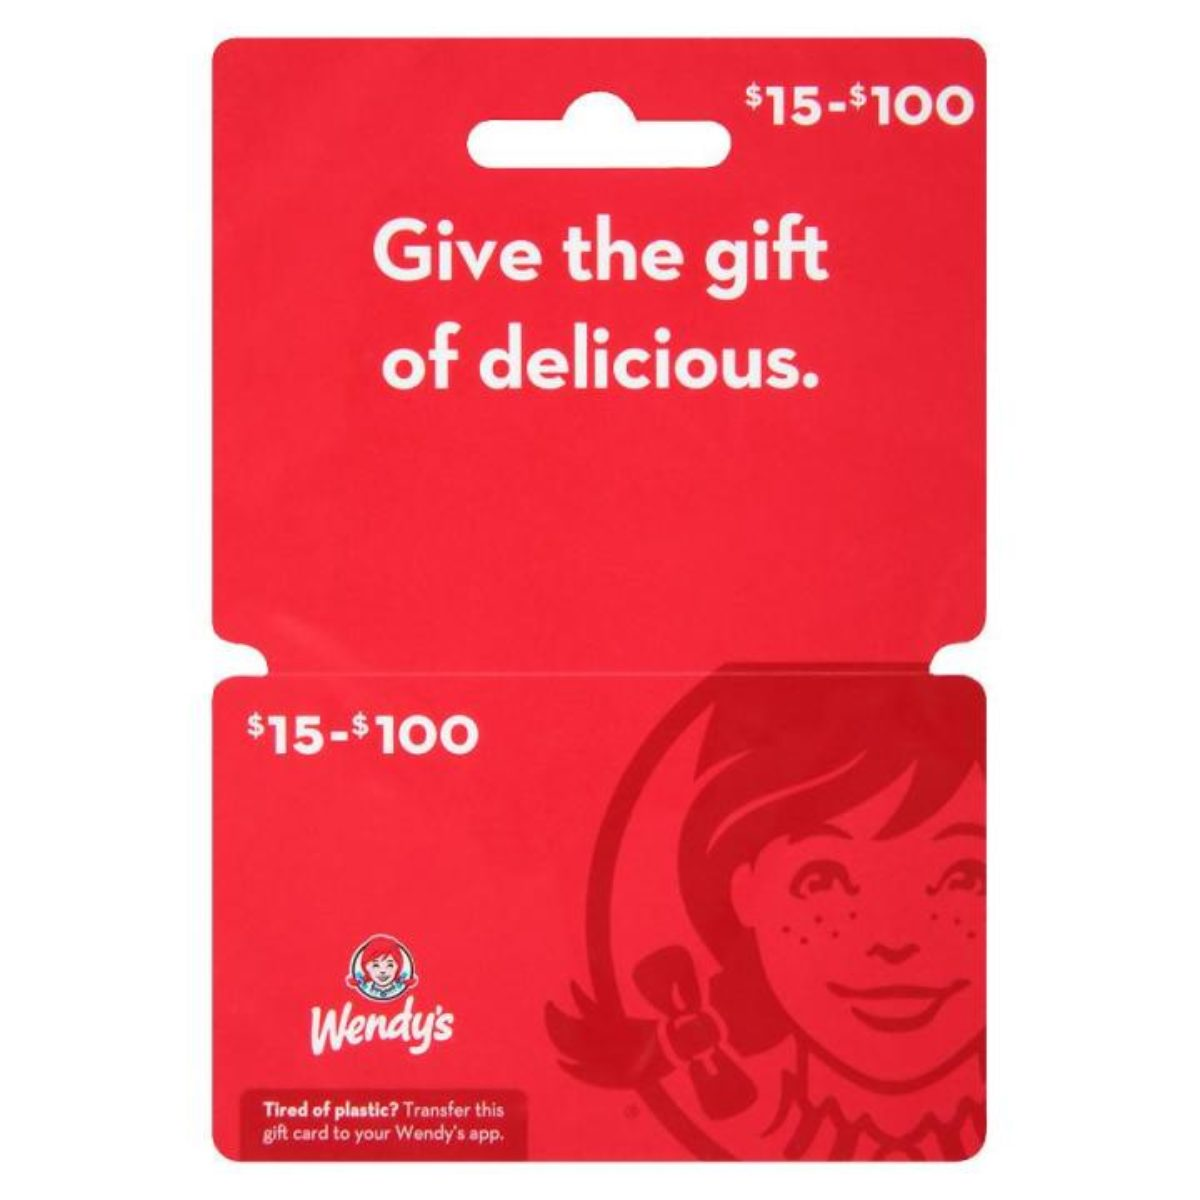 Dining Out Gift Card Activation